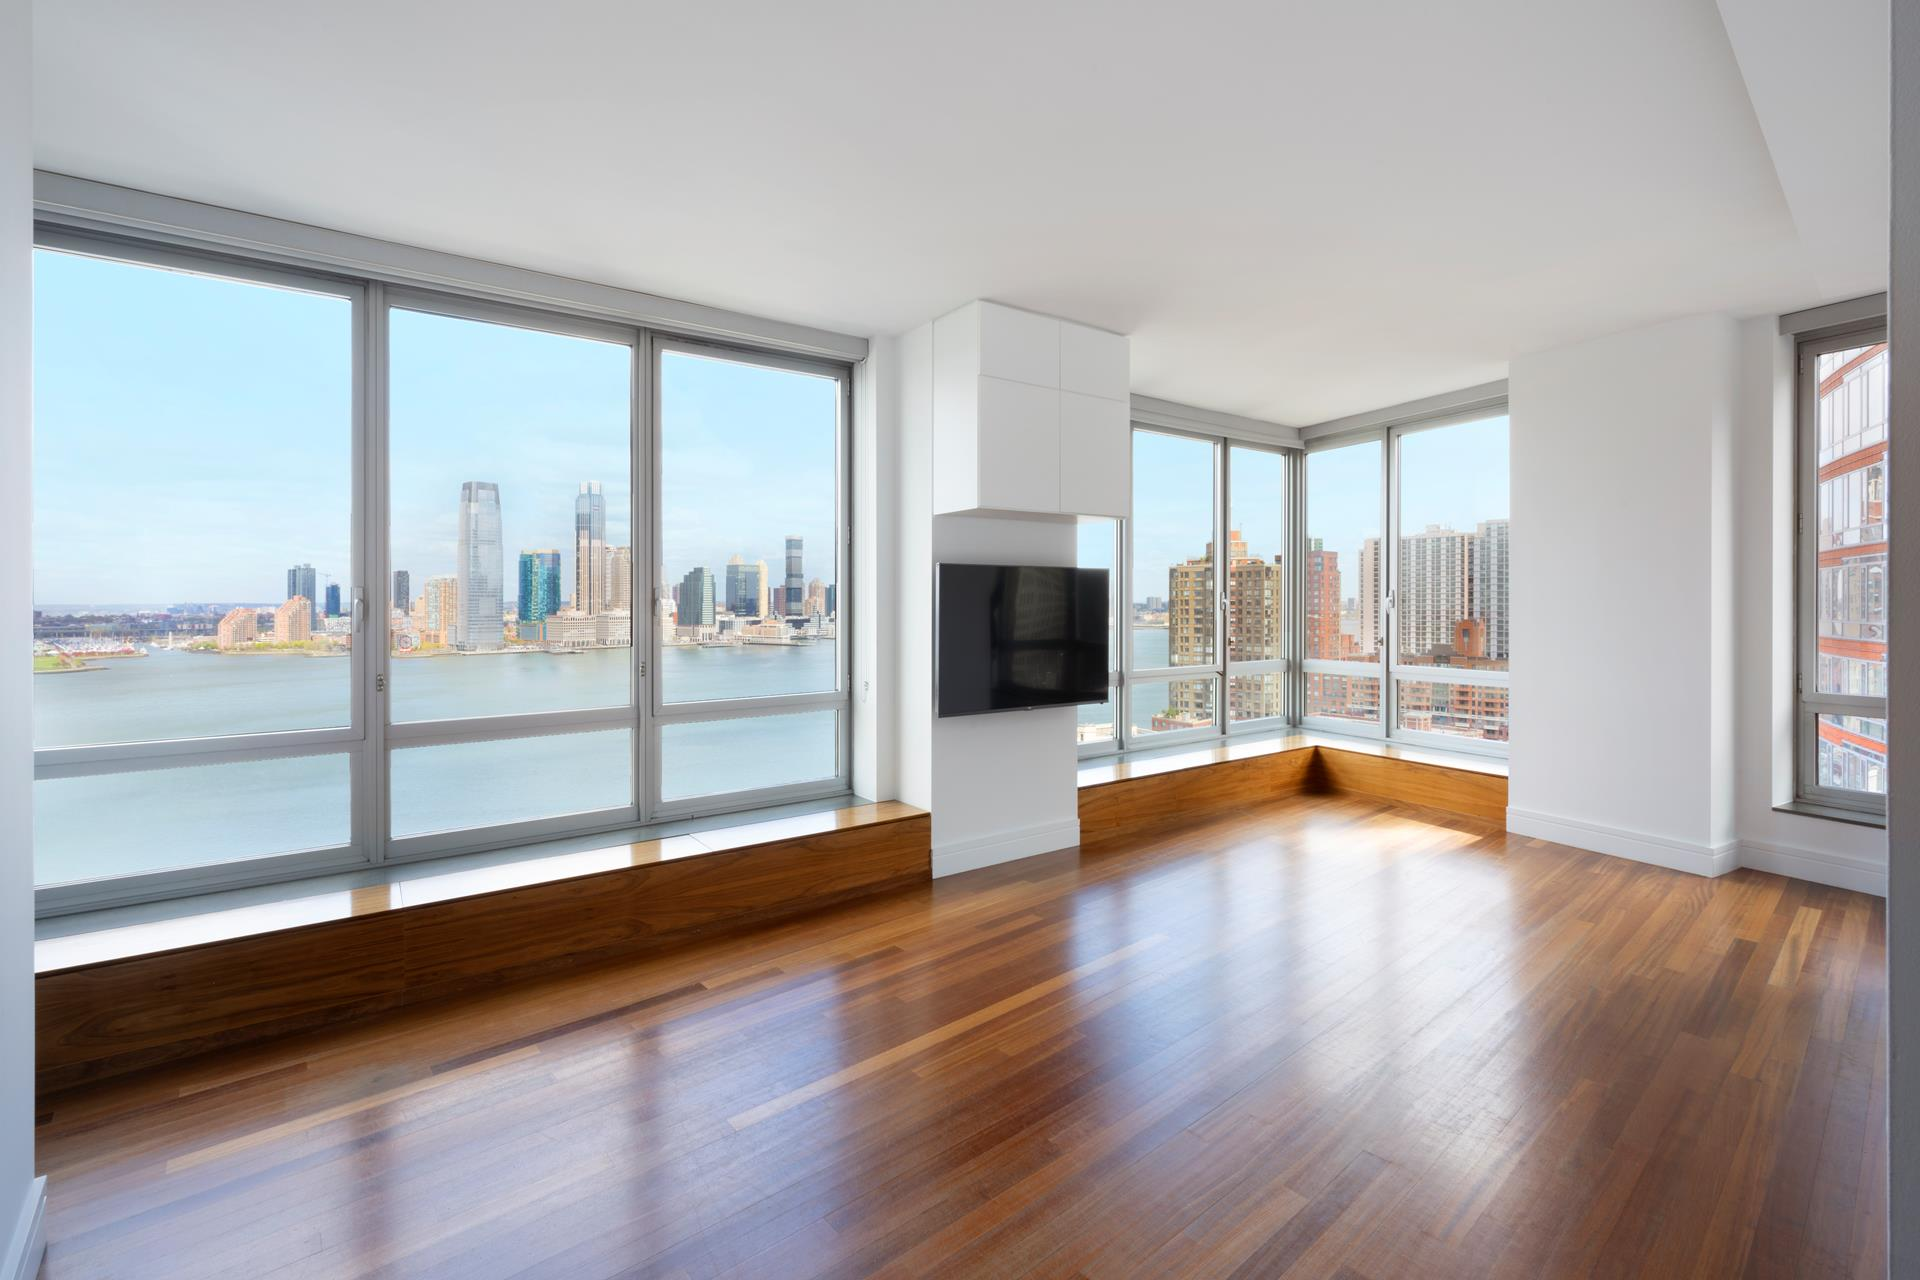 Welcome home to this spacious 5-bedroom, 5.5-bathroom condo with panoramic river and city views that feature the Statue of Liberty, Hudson River, and One World Trade. The living room includes breathtaking views and custom seating along the windowsill,   perfect for taking in cinematic sunsets, and an expansive wet bar makes entertaining a breeze. The chef's kitchen, which is open to the family room, boasts a private balcony and is appointed with top-of-the line appliances, including a Sub-Zero refrigerator,   Miele dishwasher, Viking gas range, and U-line wine cooler. The spacious primary bedroom has direct river views, en-suite bathroom with a double vanity, soaking tub and frameless glass shower, and a walk-in closet. Four additional bedrooms each have en-suite   bathrooms. Other apartment features include an in-unit washer/dryer, Brazilian cherry wood flooring, and an entry with custom built-ins for coats and shoes.    30 West Street includes a state-of-the art fitness center, resident lounge, kids' club, 24-hour concierge, doorman, and live-in resident manager. This coveted residence is conveniently located in Battery Park City adjacent to numerous parks and promenades,   Pier A, and Brookfield Place.